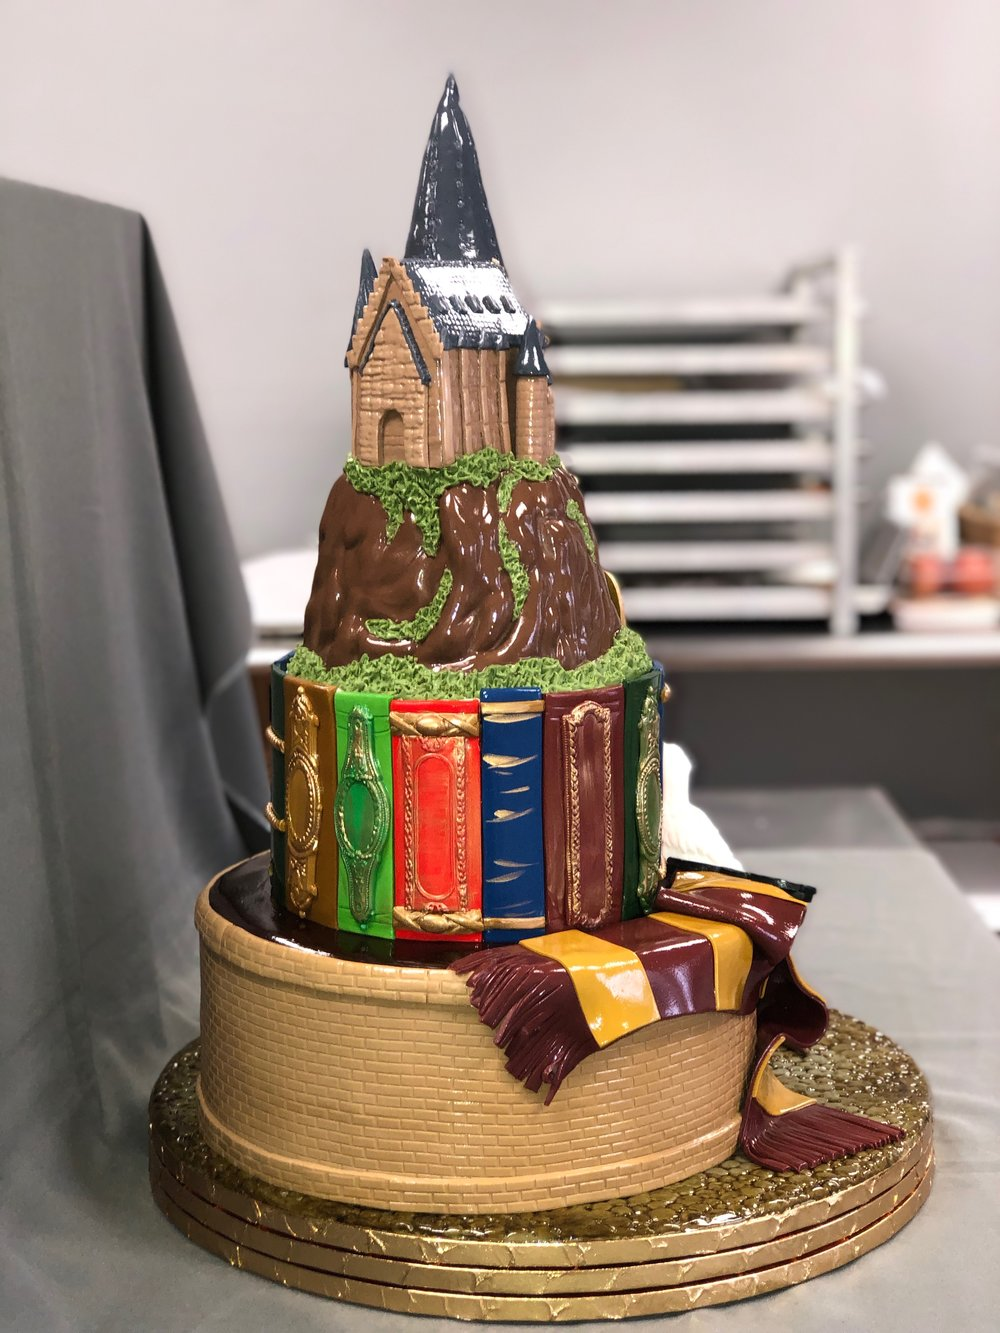 Harry Potter Birthday Cake New Jersey